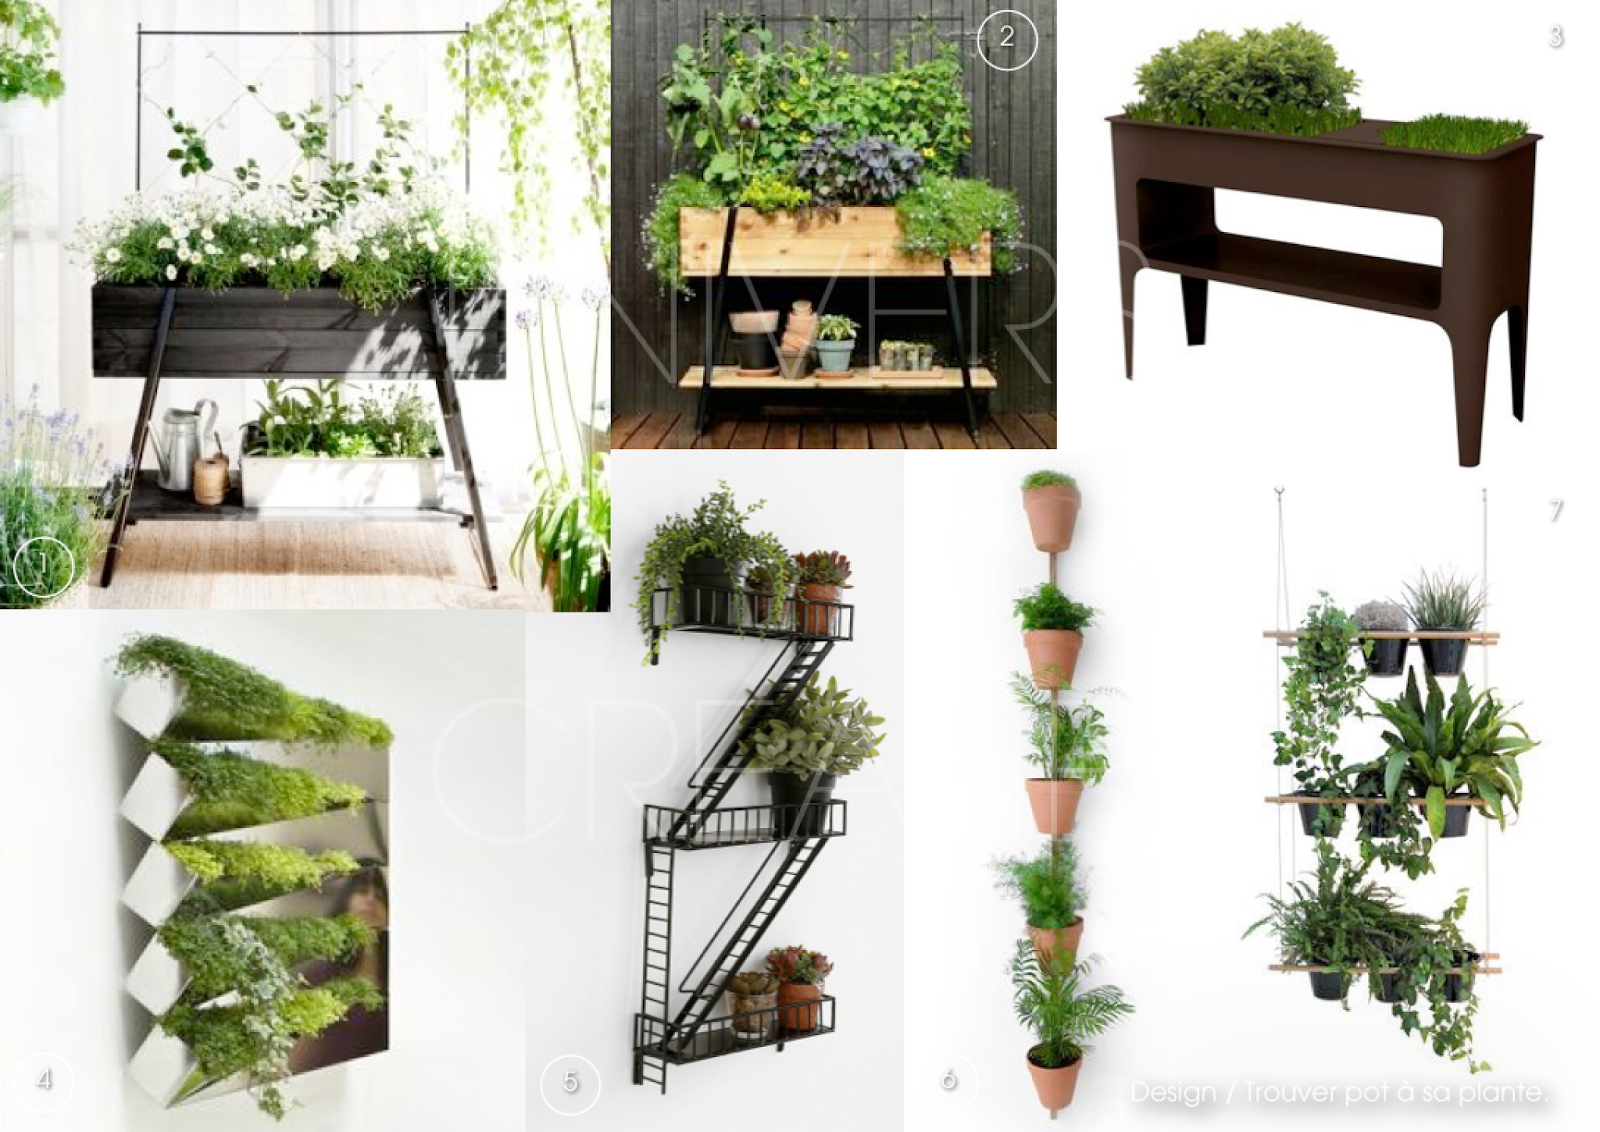 Univers creatifs design trouver pot sa plante for Plante design interieur